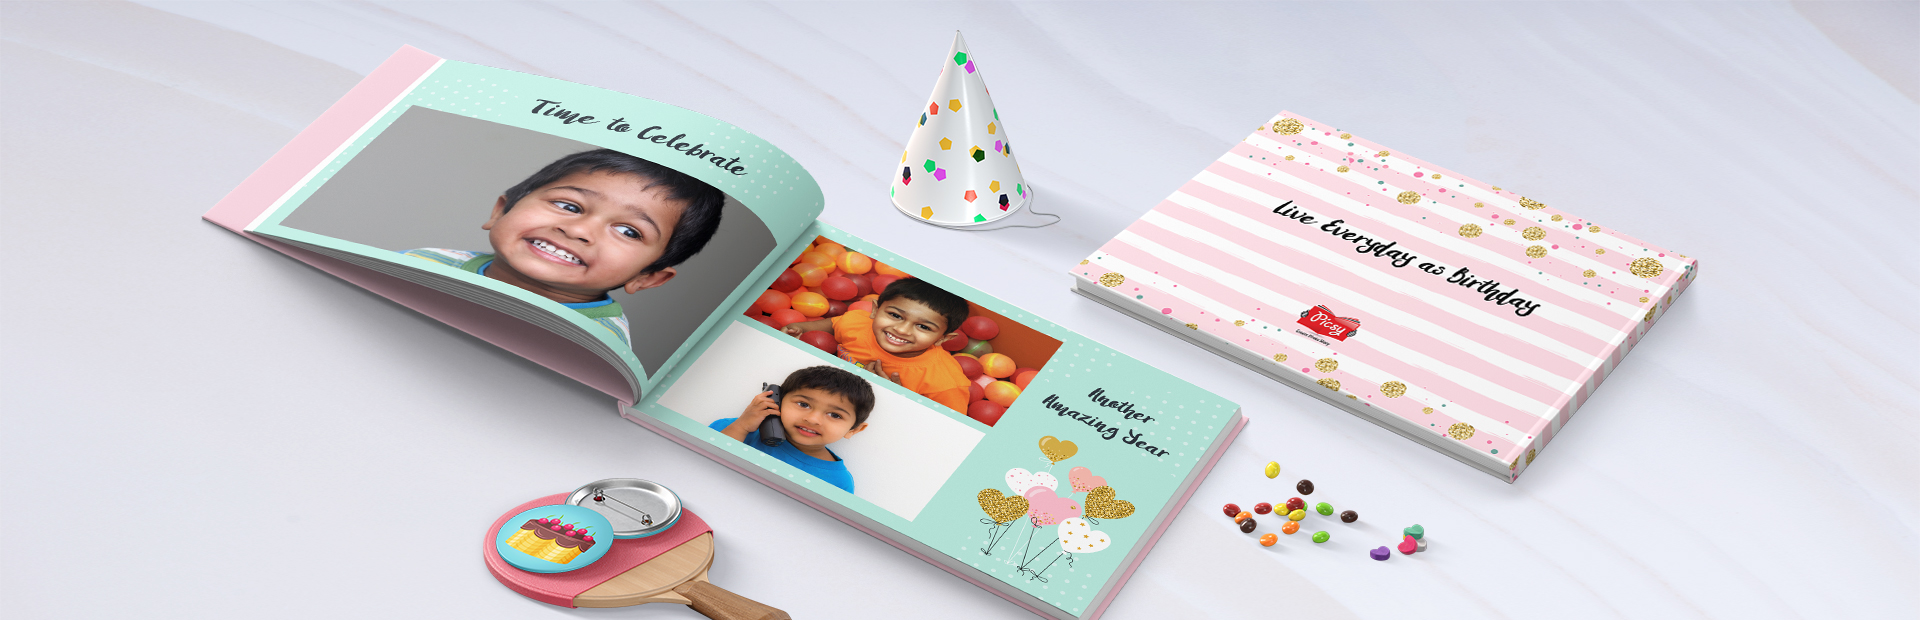 Birthday Story Custom Photo Books